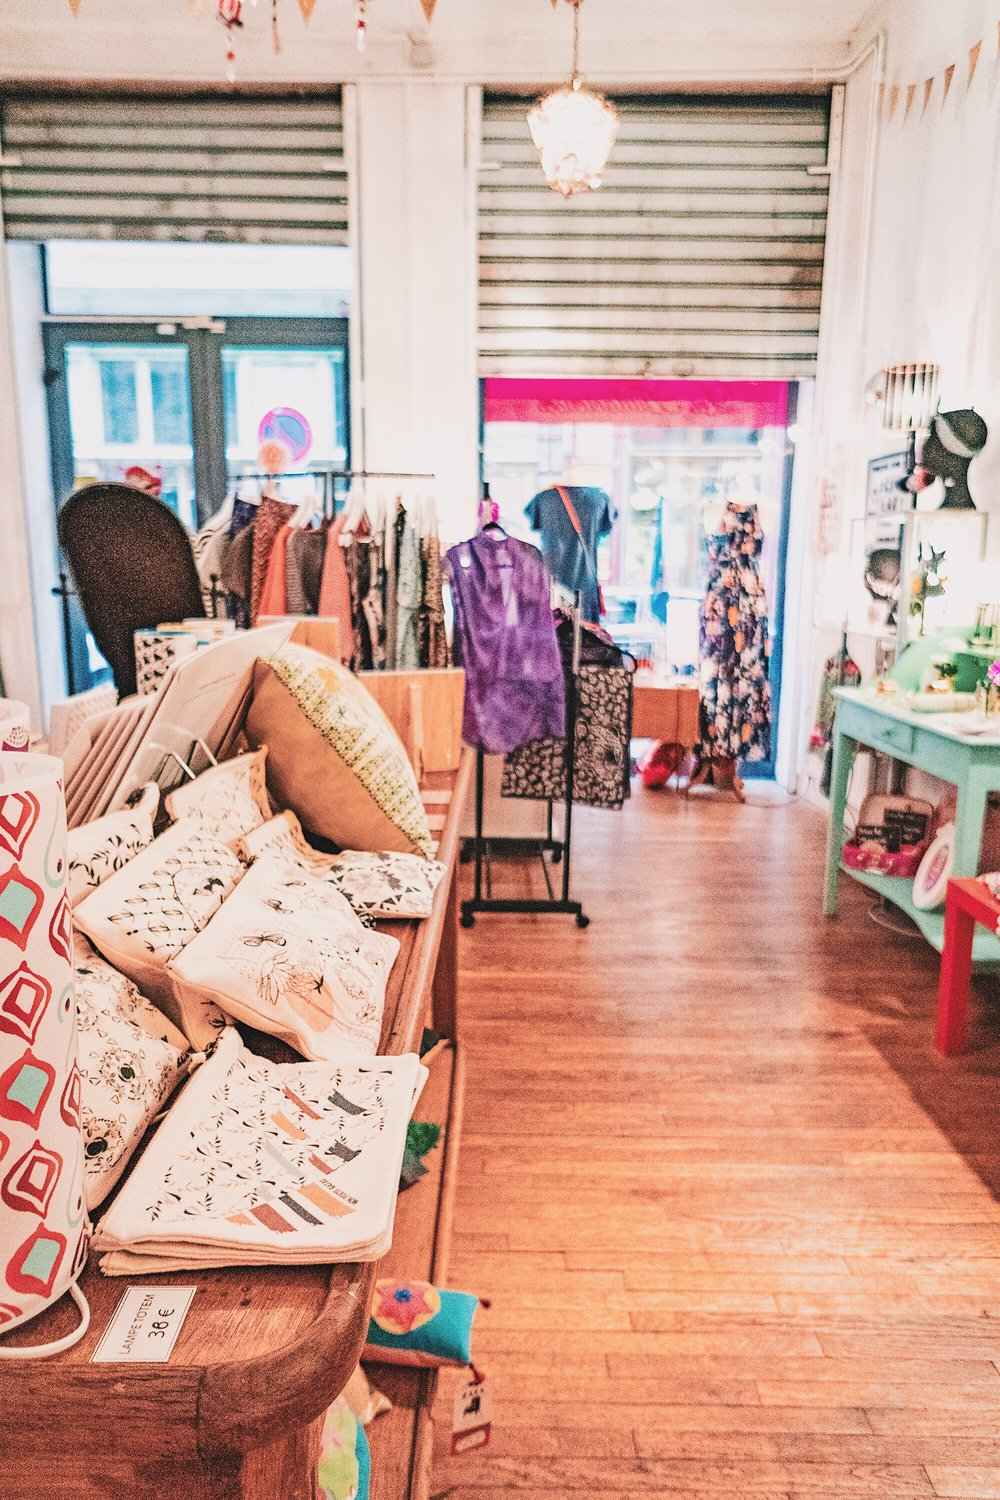 """All stockists in this shop are french artists and designers. They carry beautiful airy ruffly """"knickers"""" in colorful prints and patterns. Really regret not getting a pair!"""